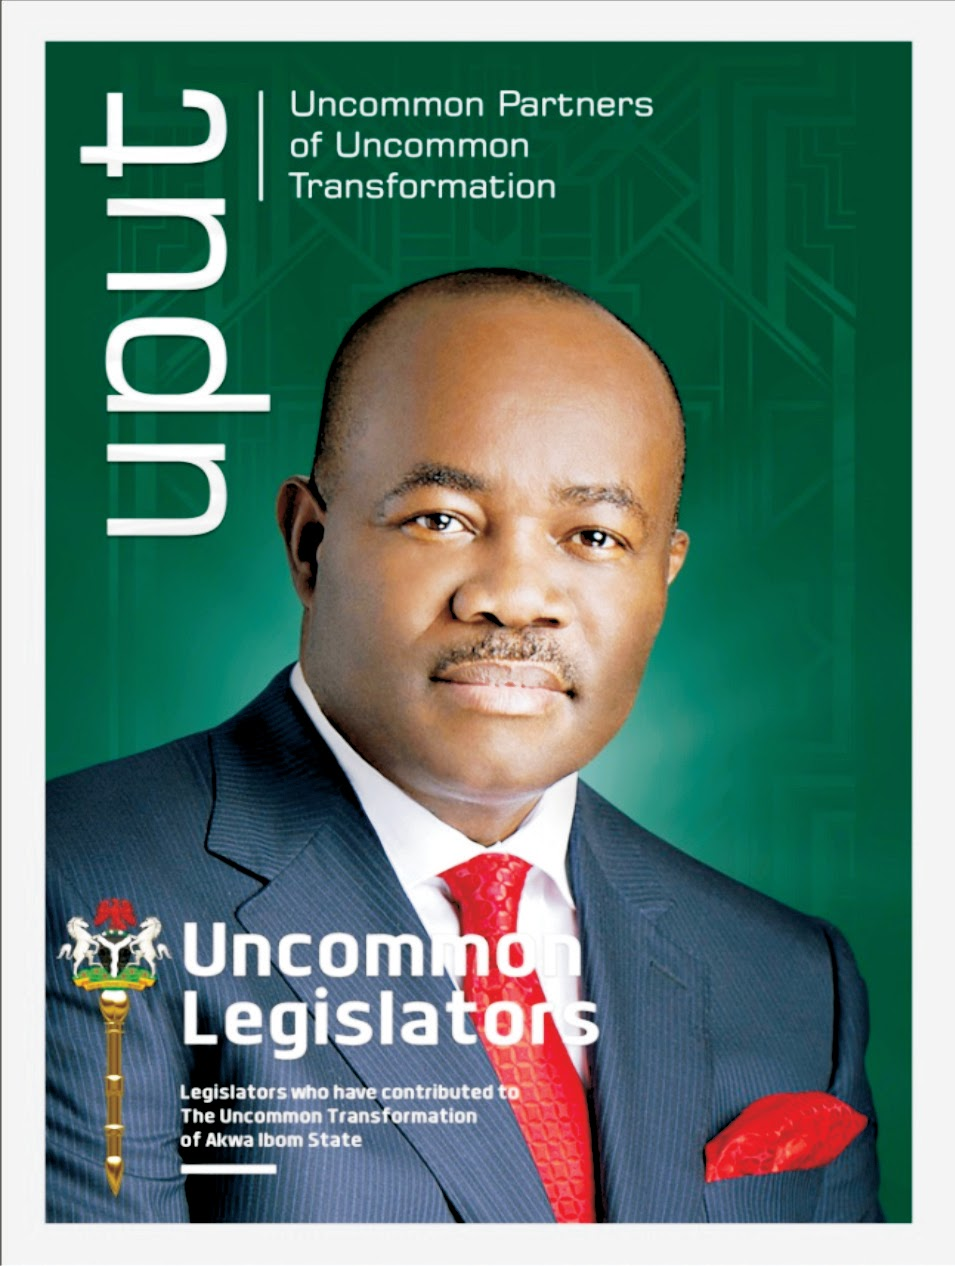 UPUT Magazine set to celebrate Uncommon Partners of Uncommon Transformation